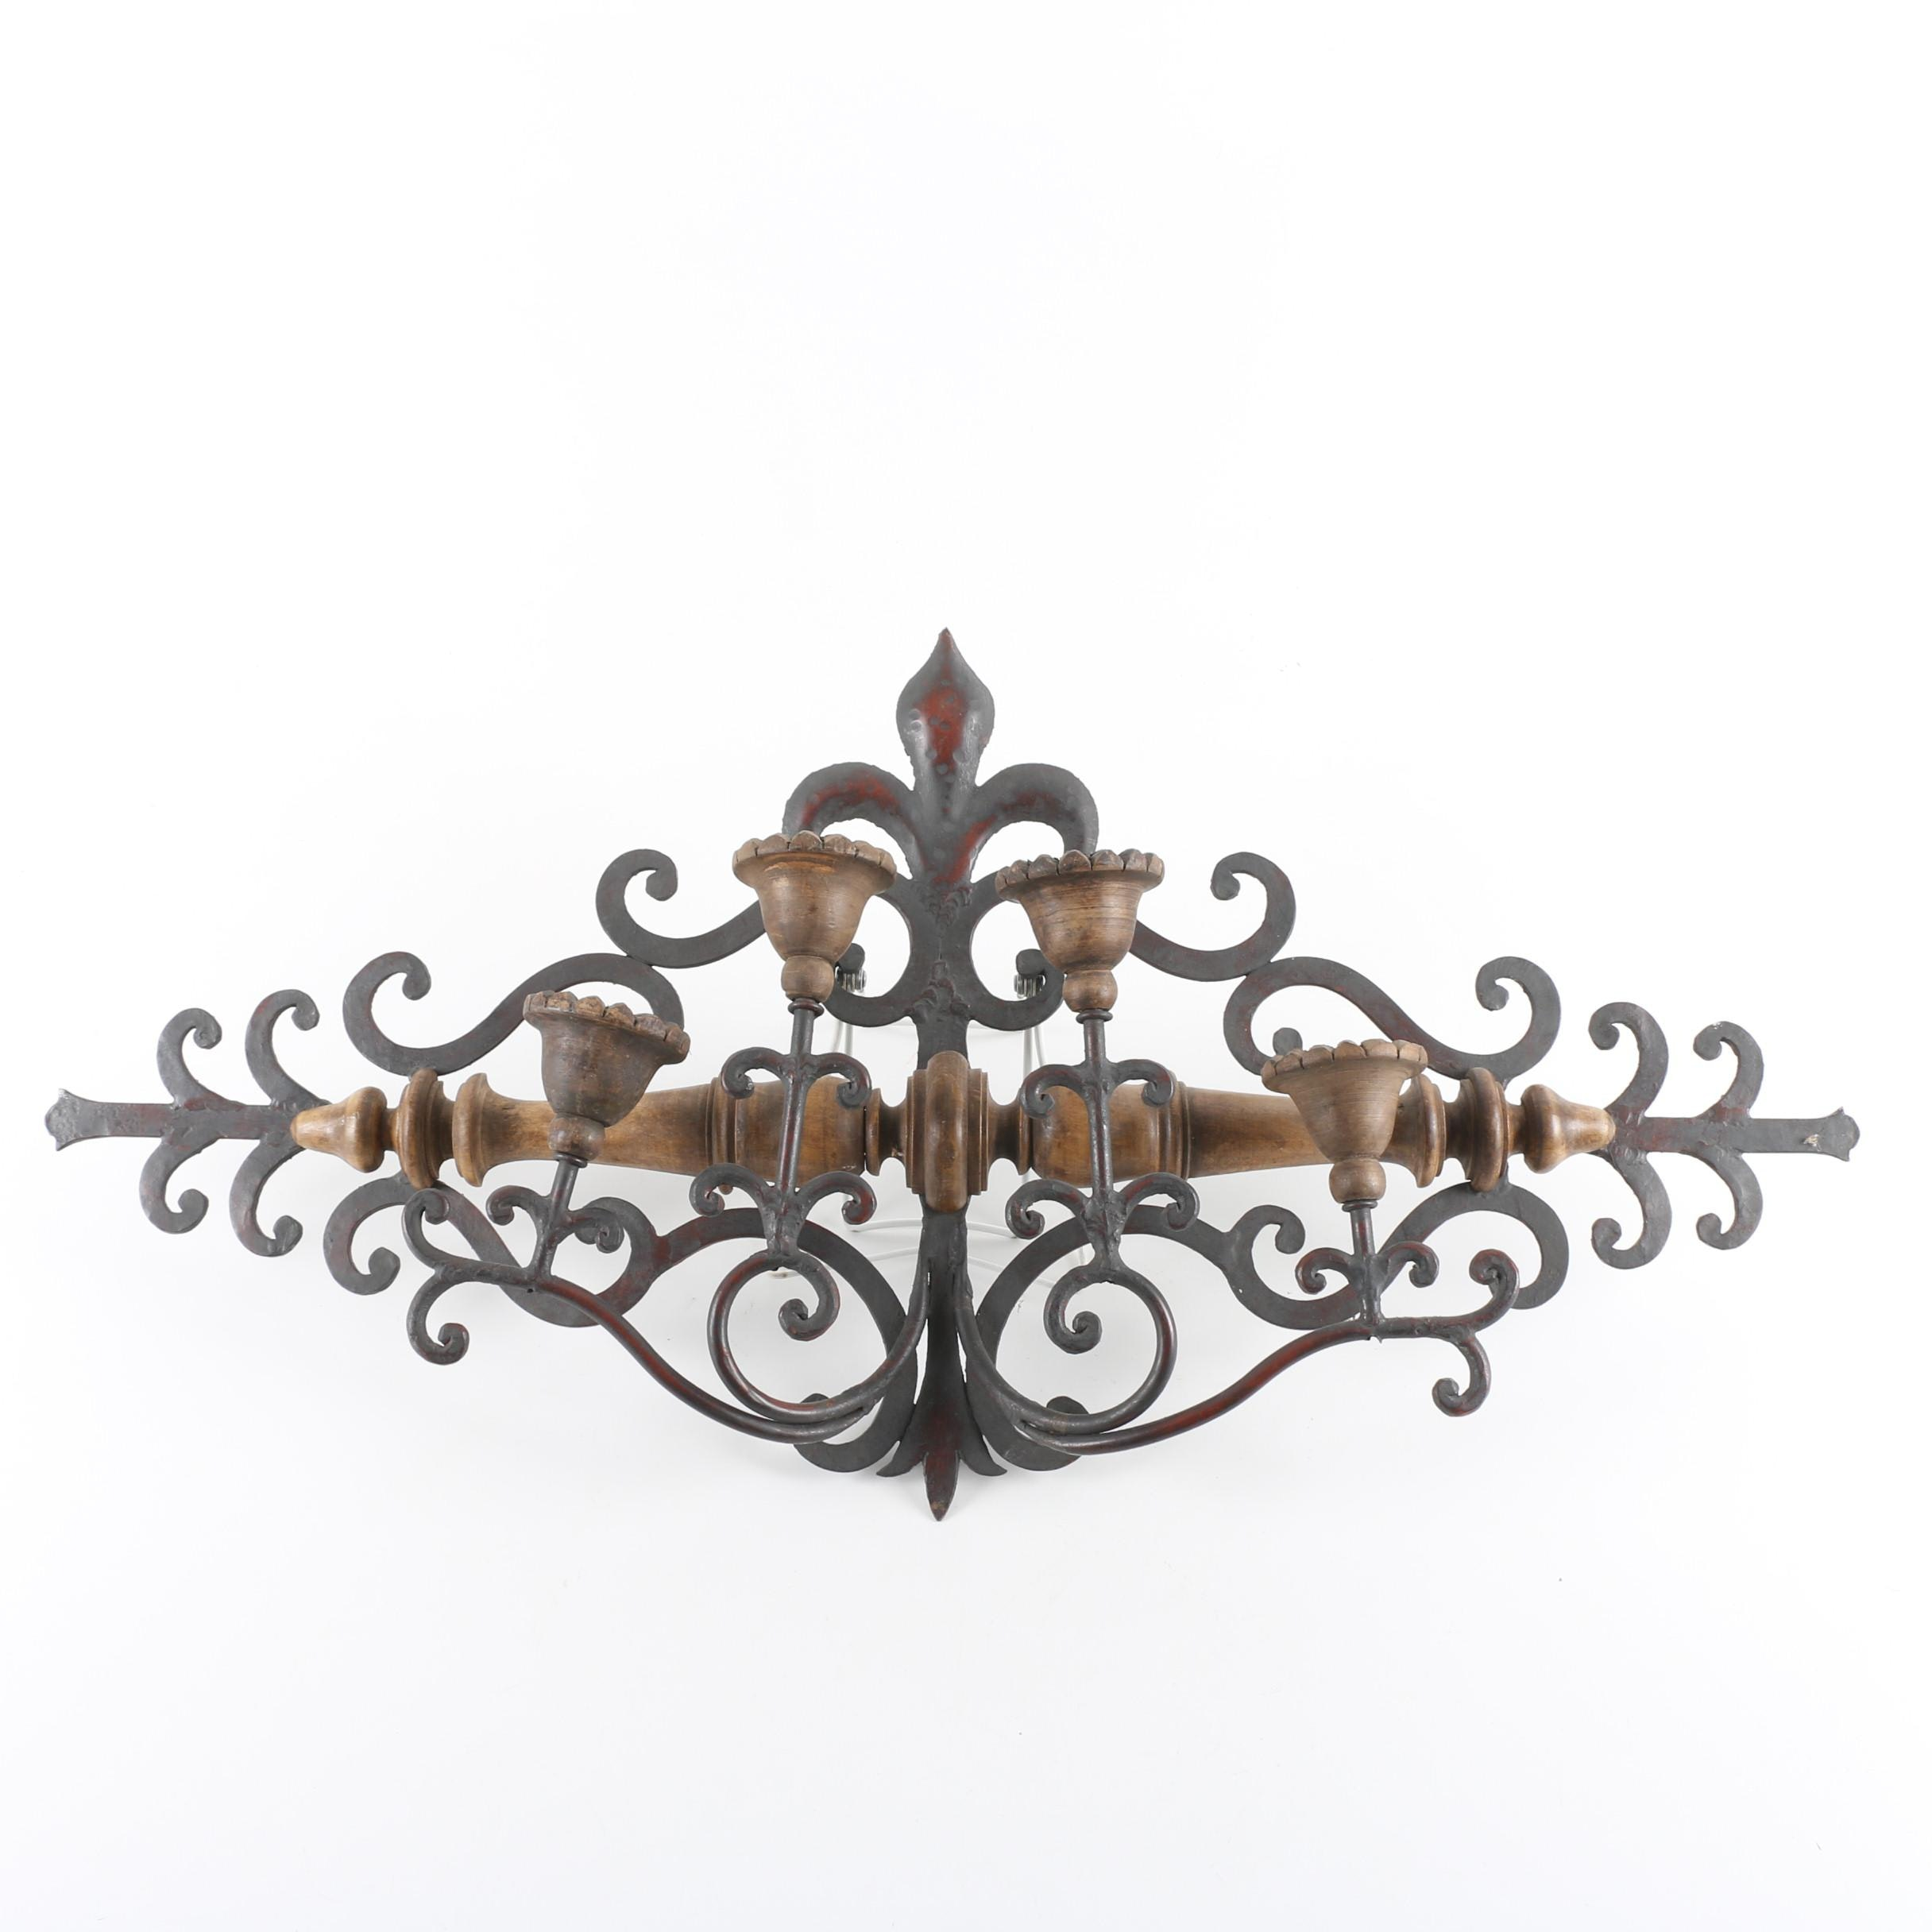 Cast Iron and Wood Candle Sconce